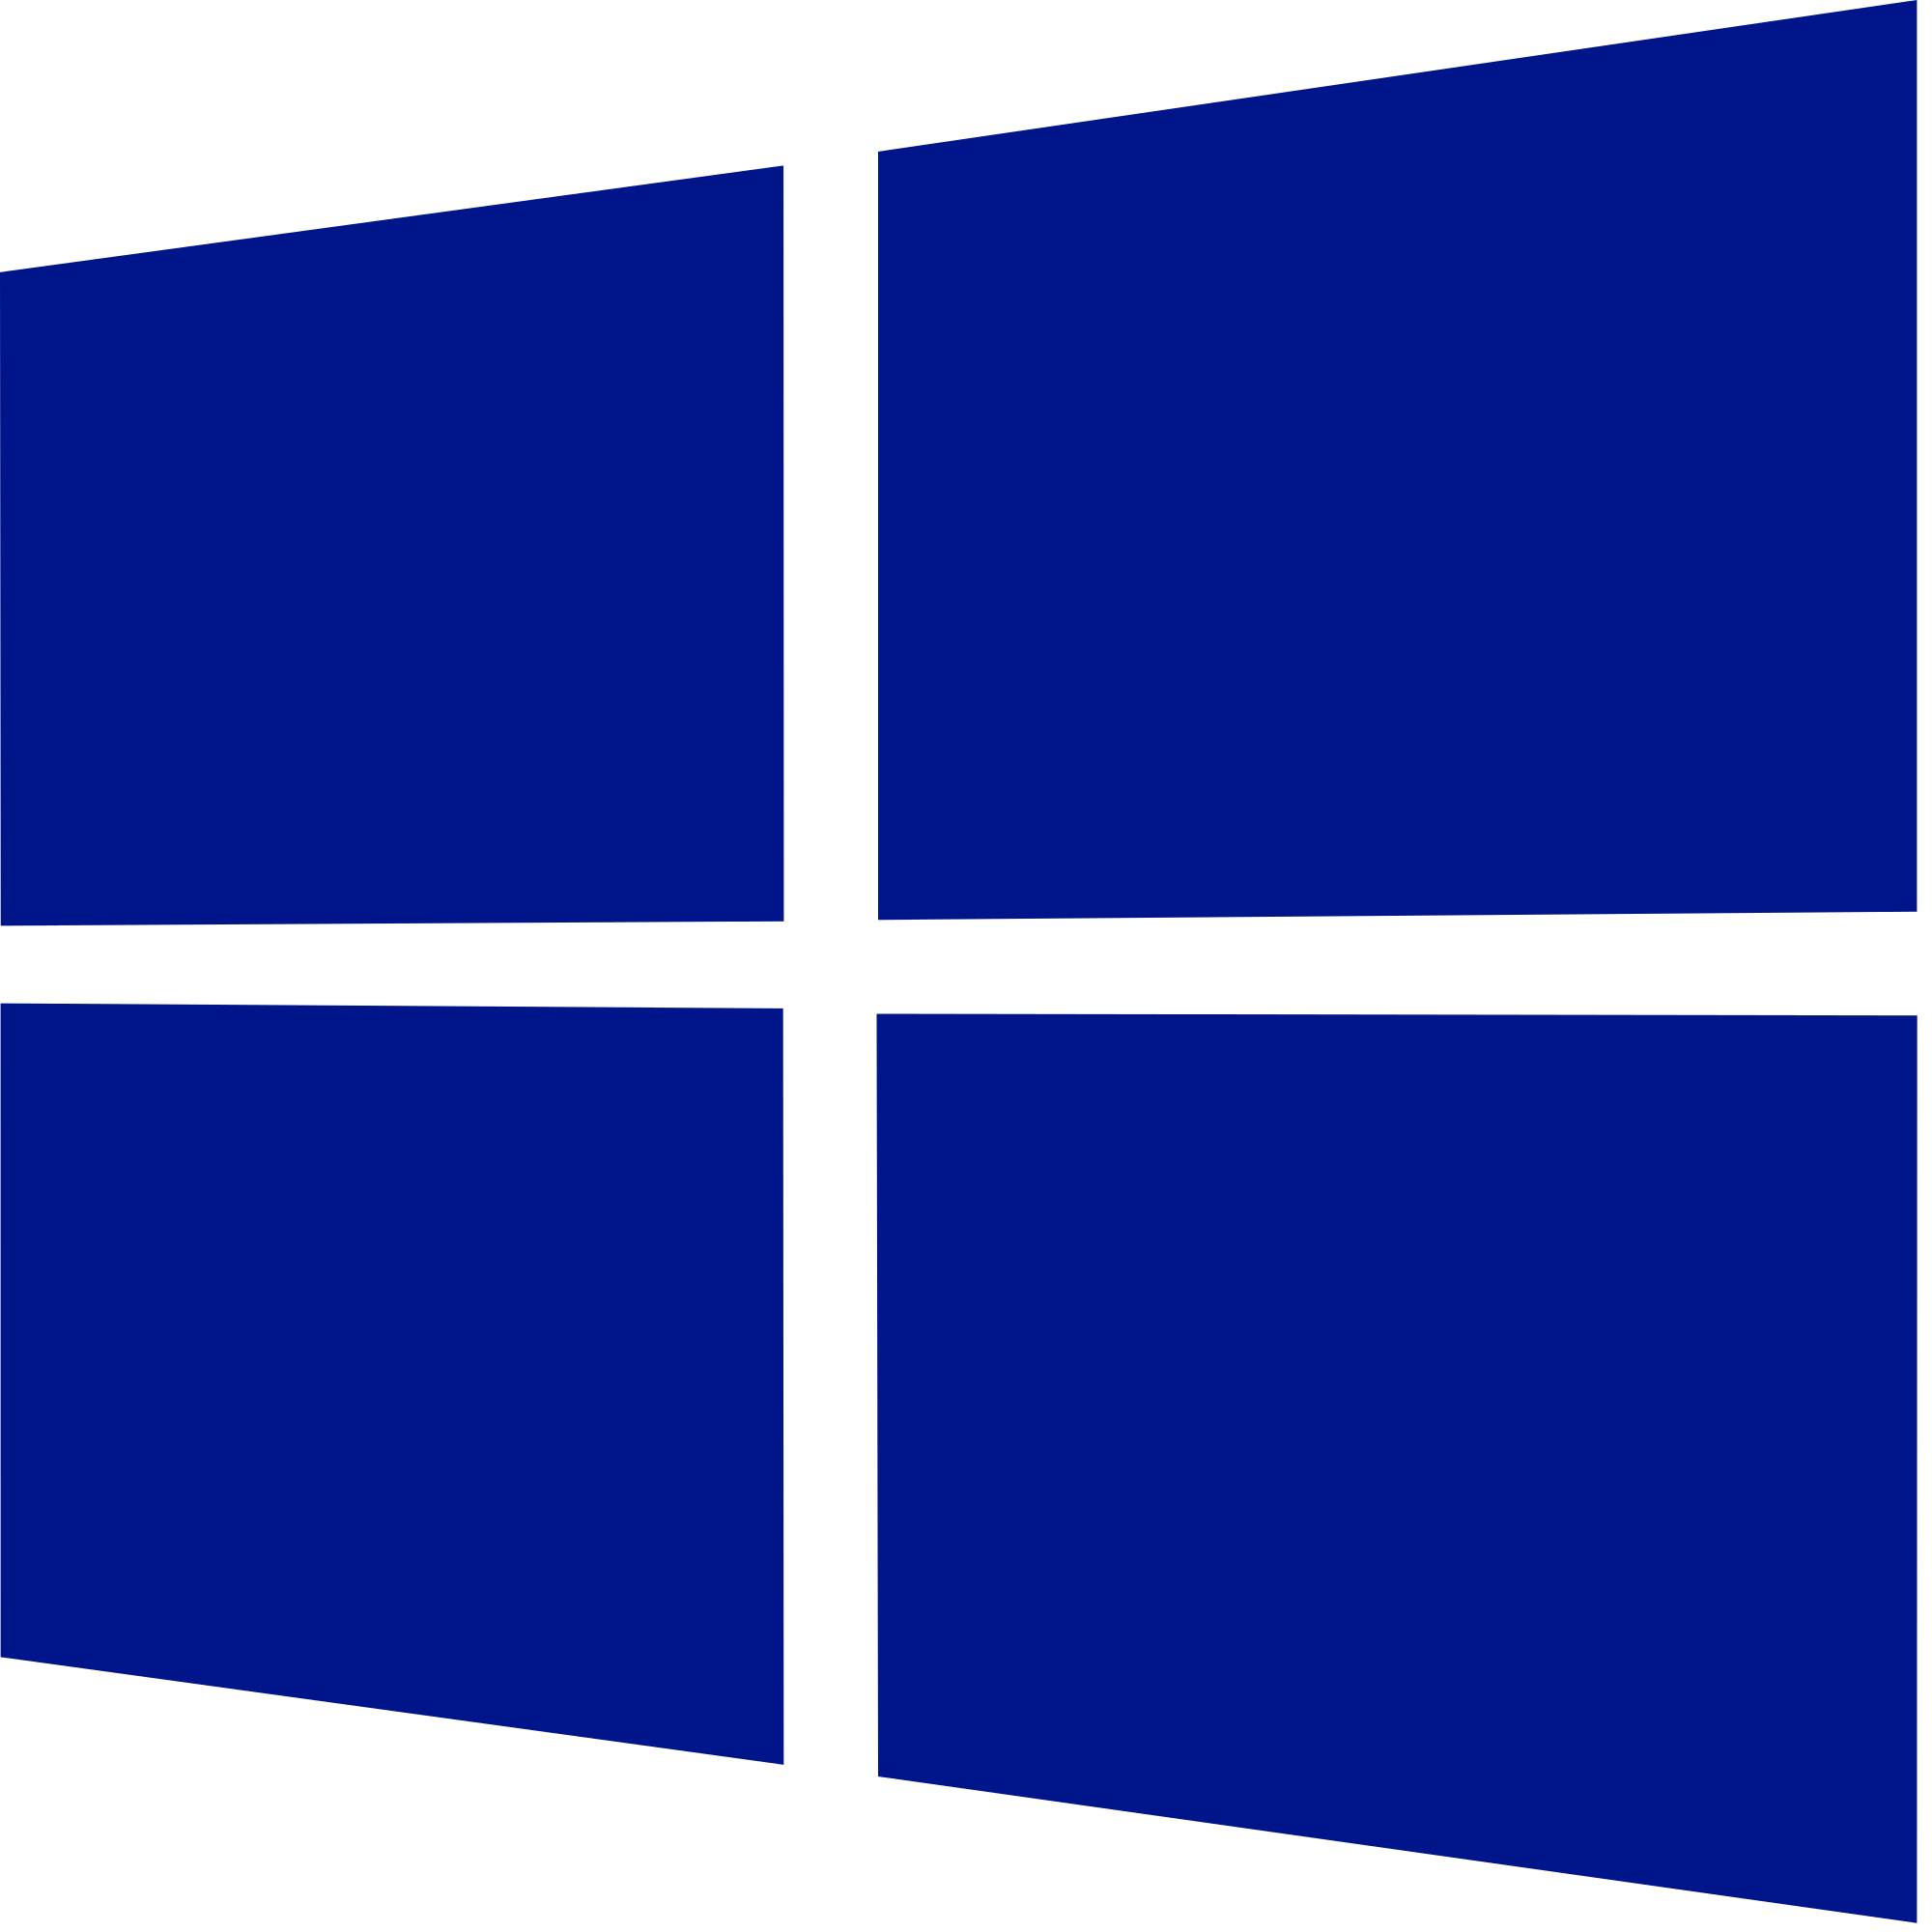 How to open a .png file in windows 10. Logo blue purple svg